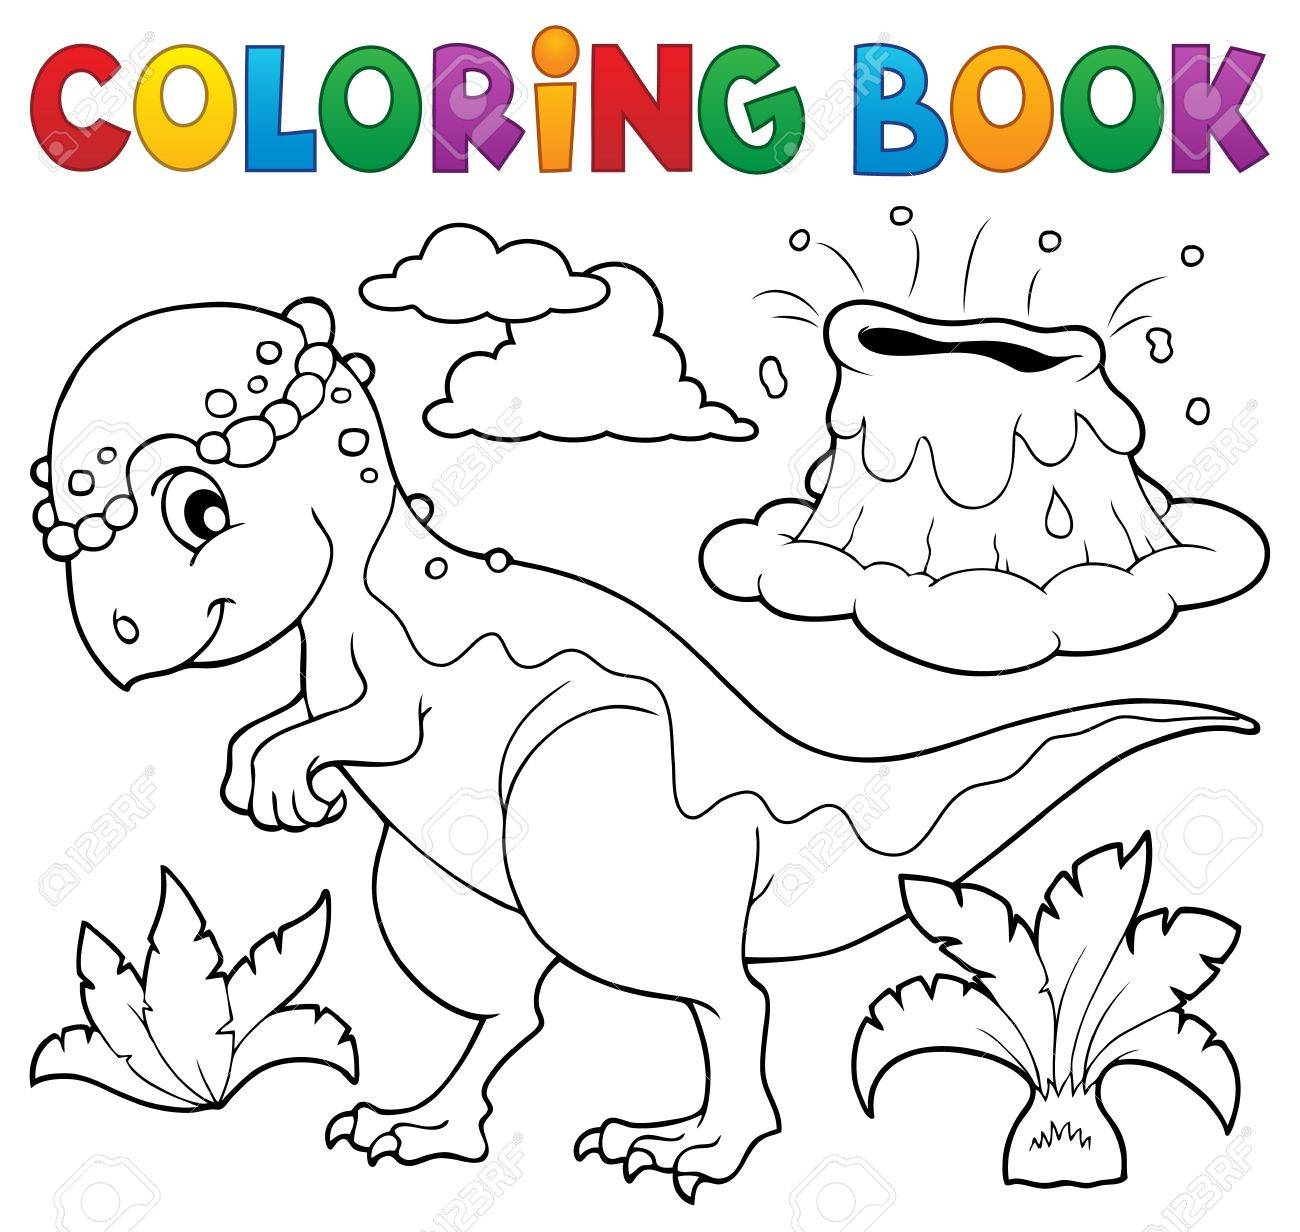 Coloring Book Dinosaur Topic Stock Vector